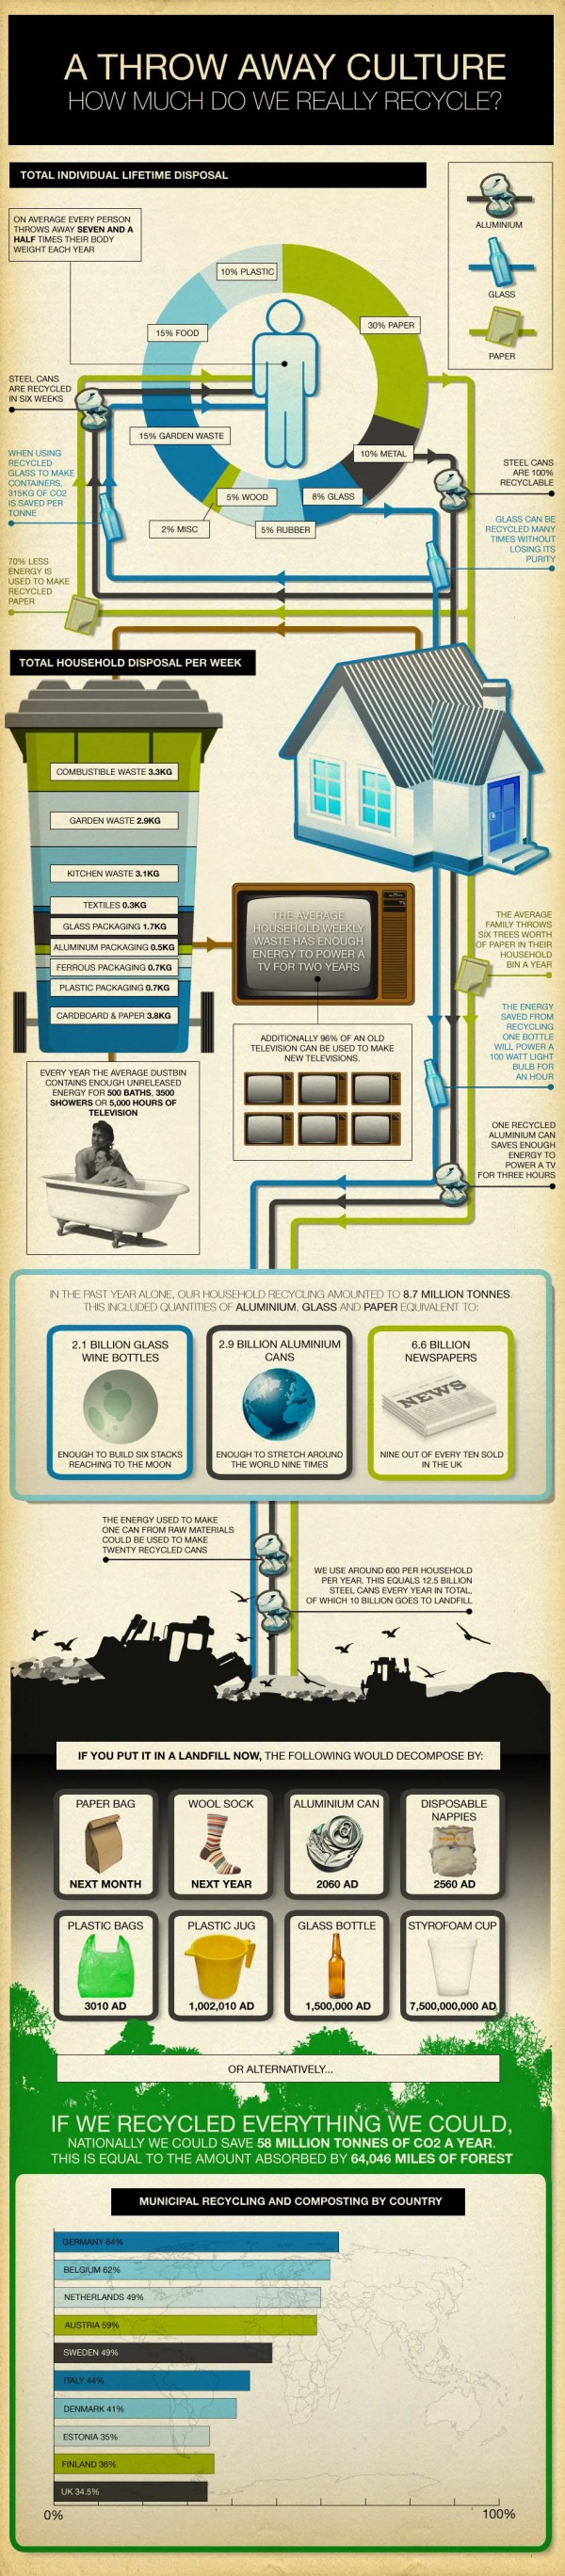 How Much Do We Really Recycle? (Infographic)